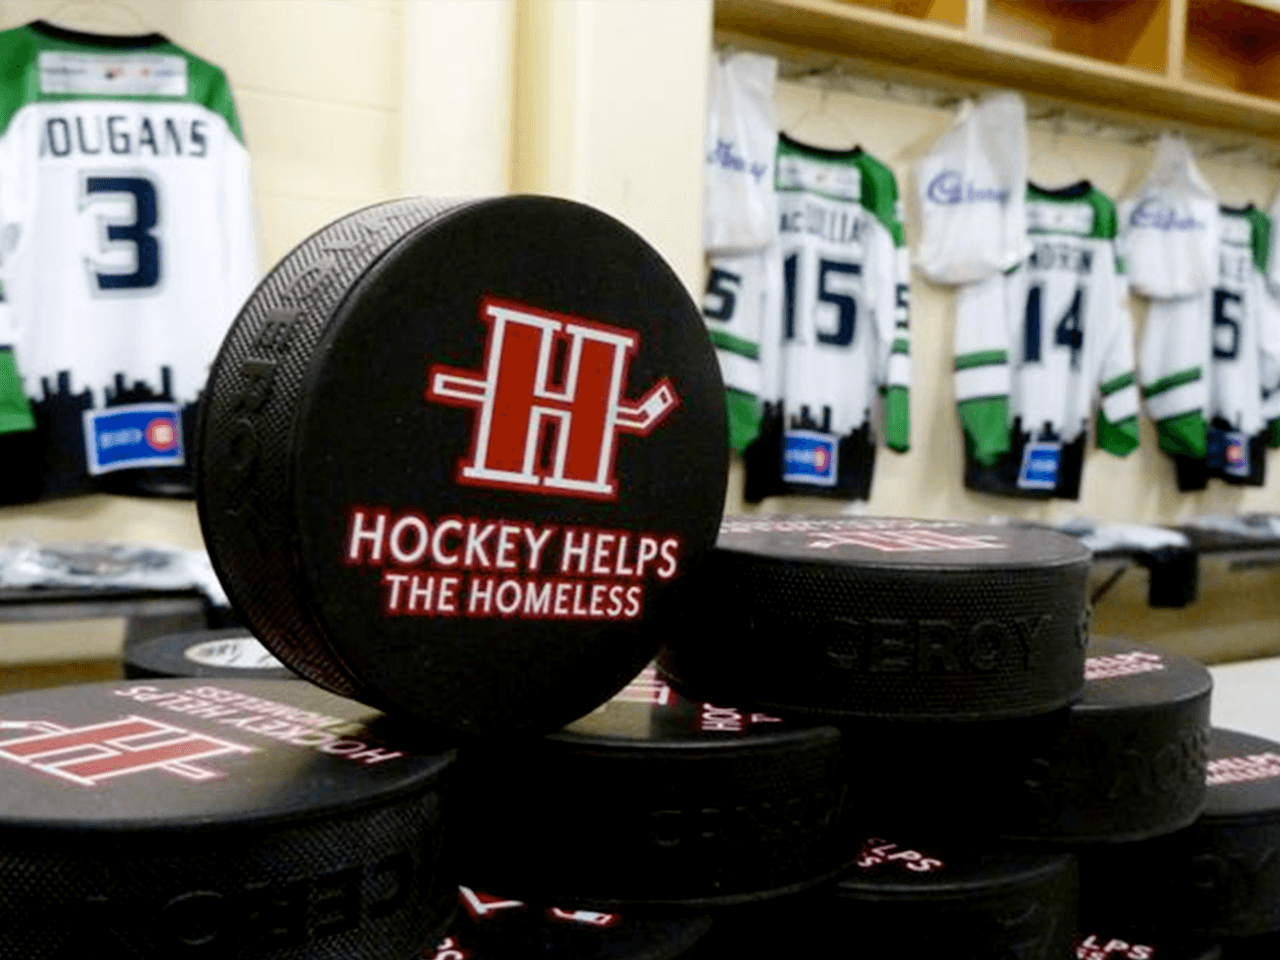 hockey puck with hockey helps the homeless logo on it